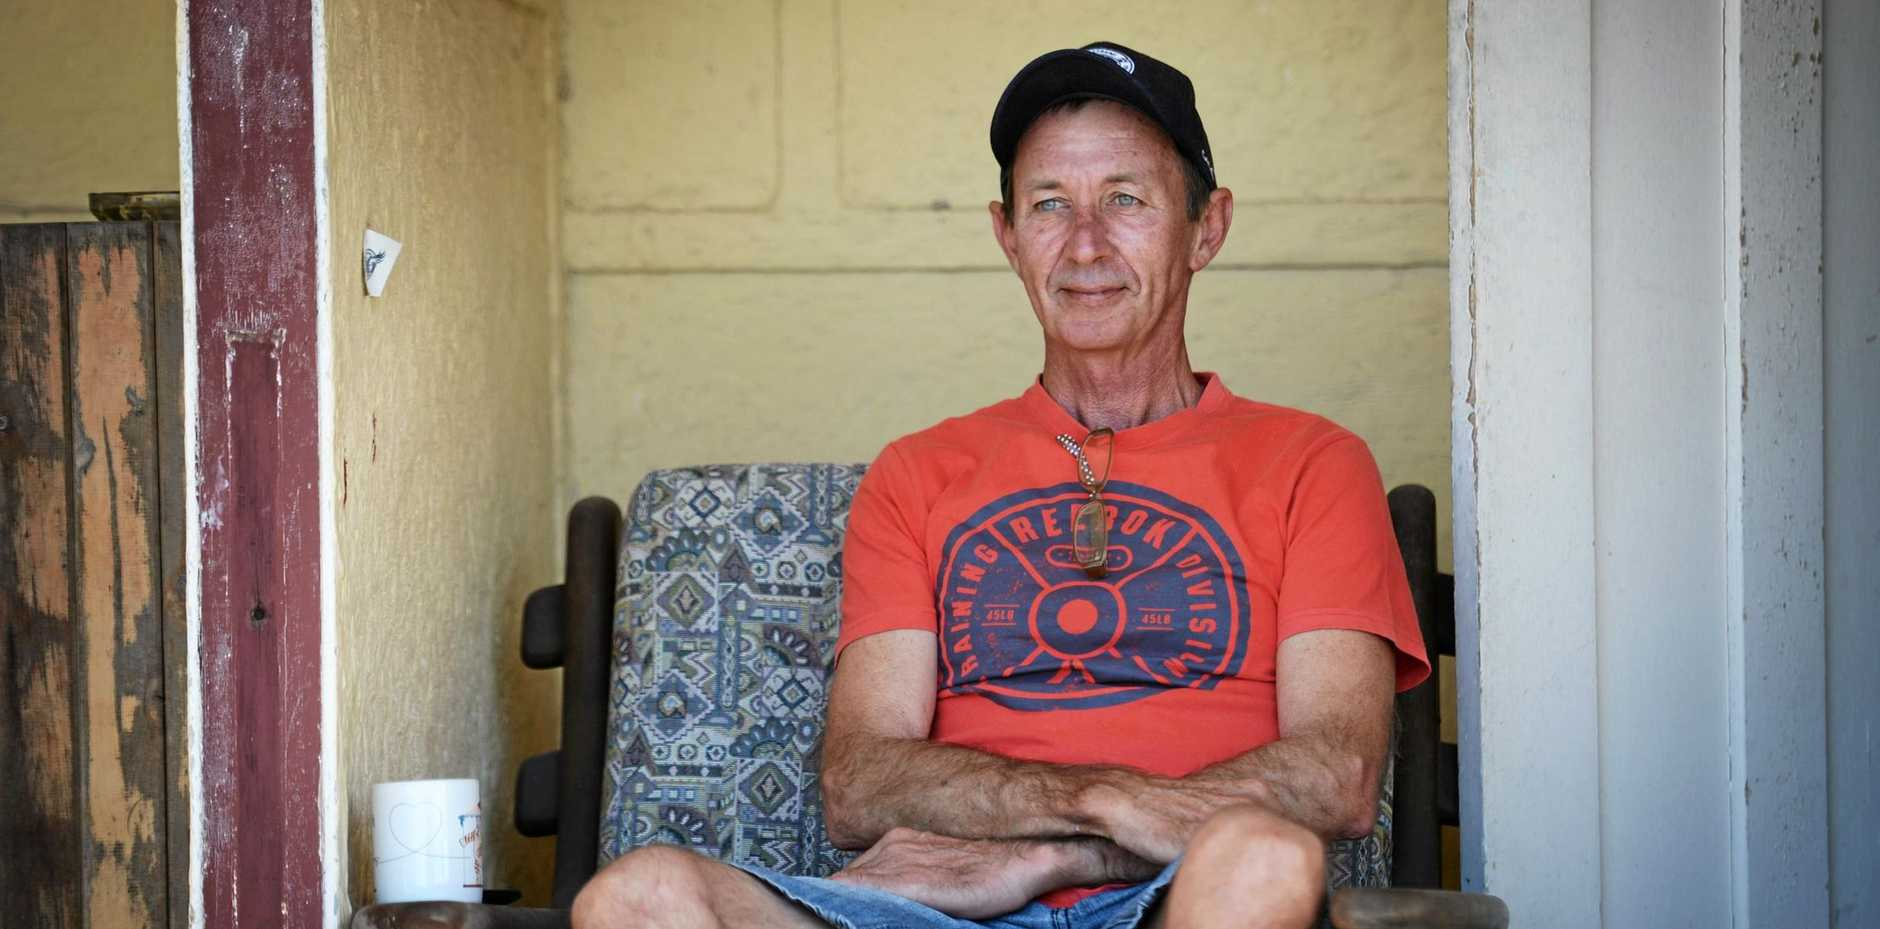 CENTRELINK CHANGE: Gordon Aitkenhead is struggling to find work and Centrelink has changed to make him apply for 20 jobs instead of volunteering at the CQ military museum to meet his obligations to collect a Newstart Allowance.